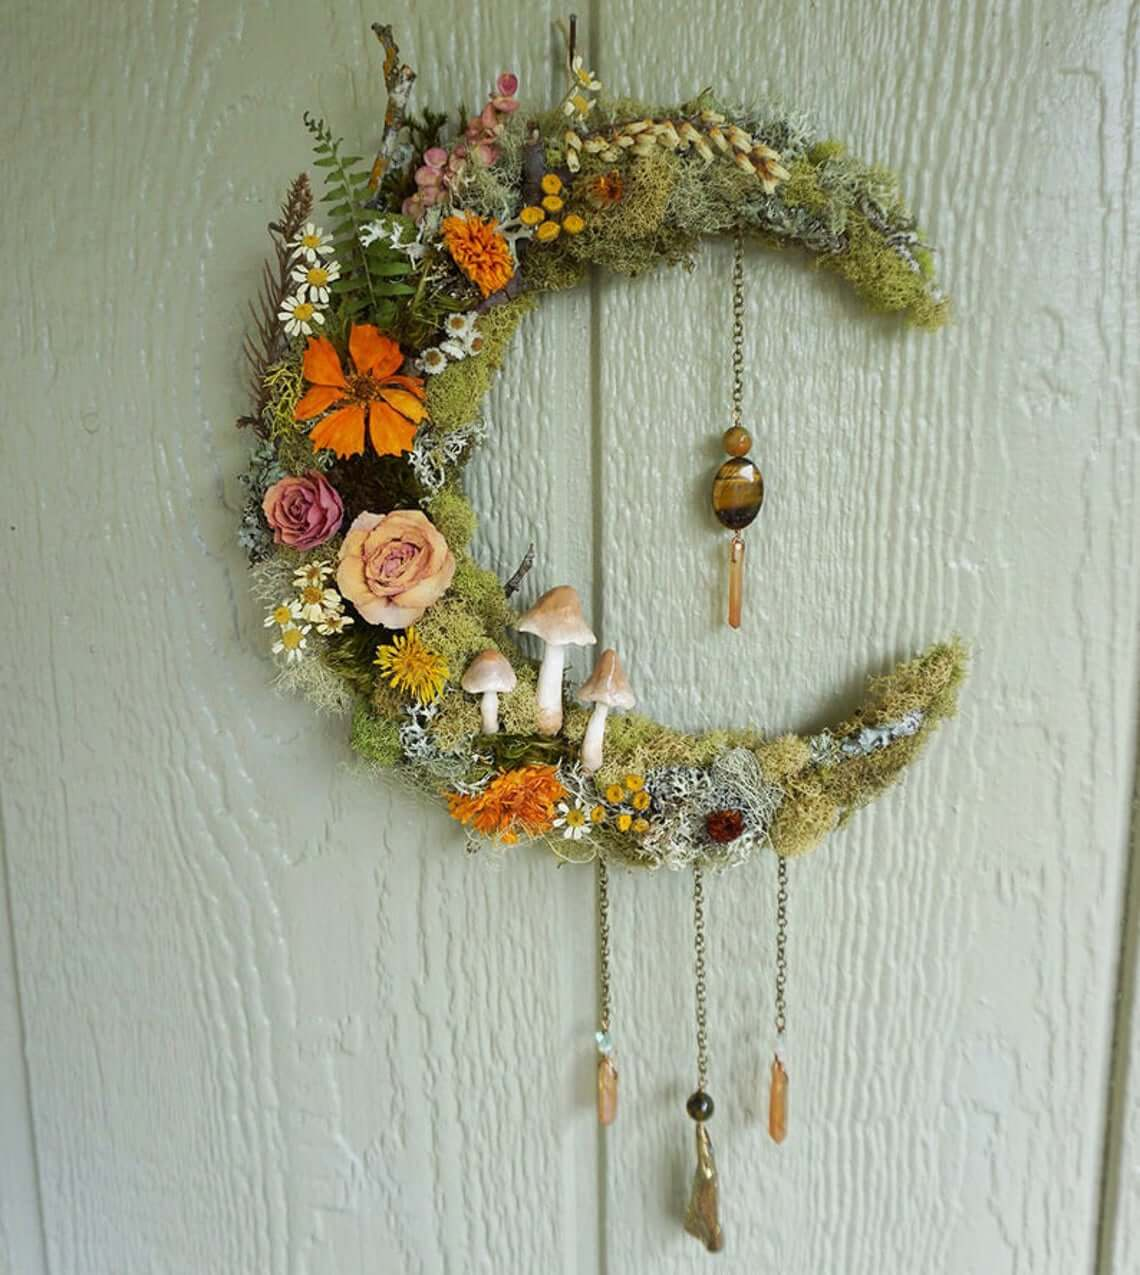 Vintage-inspired Decorative Mirror with Moss